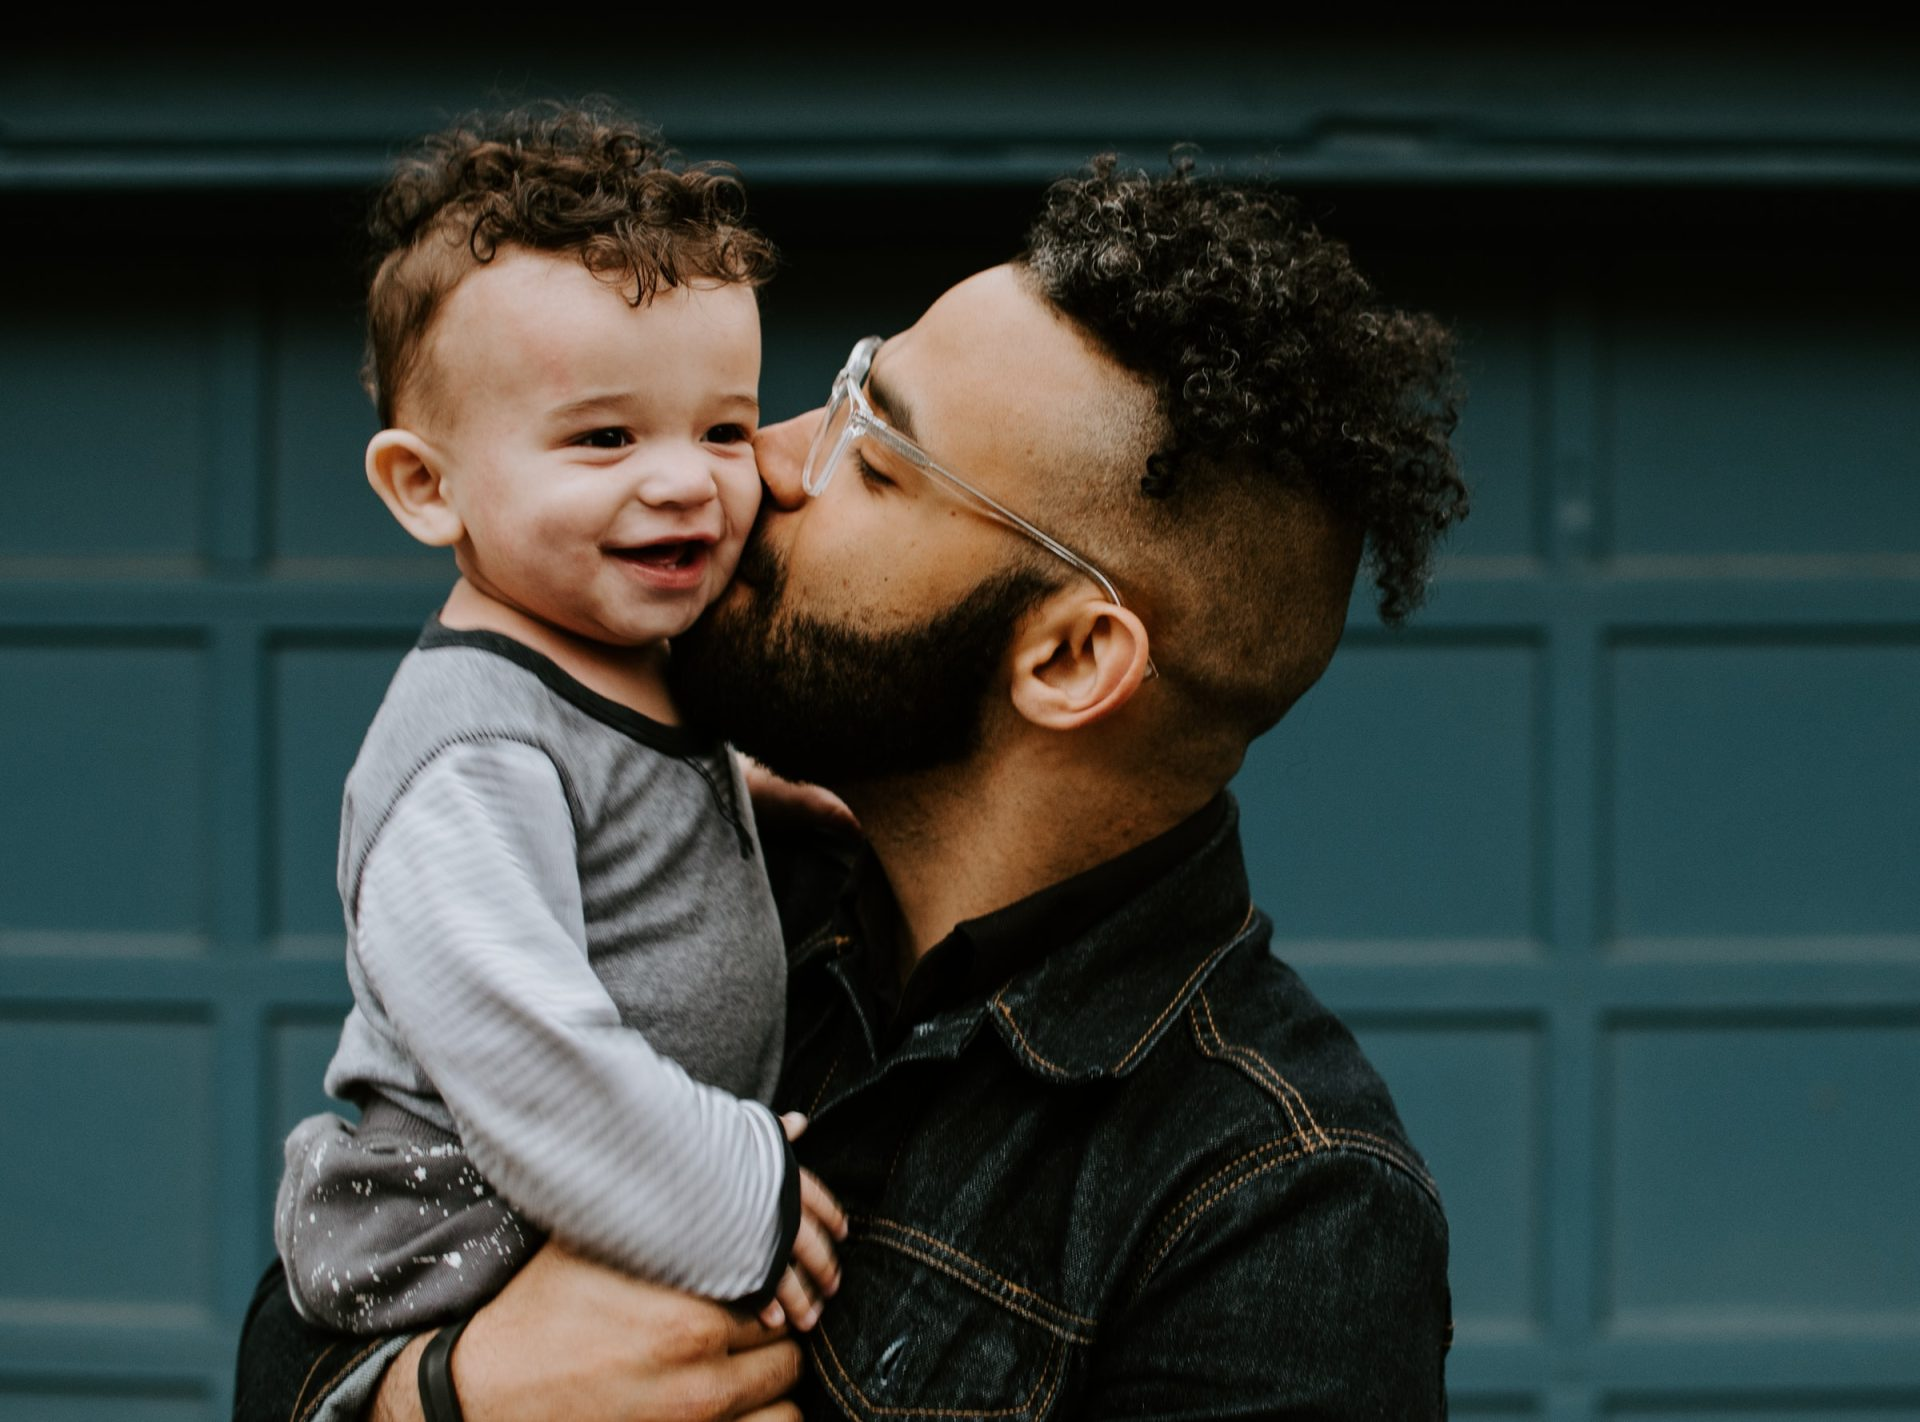 Man holding his son and kissing him on the cheek to represent counseling exercises and parenting with empathy.